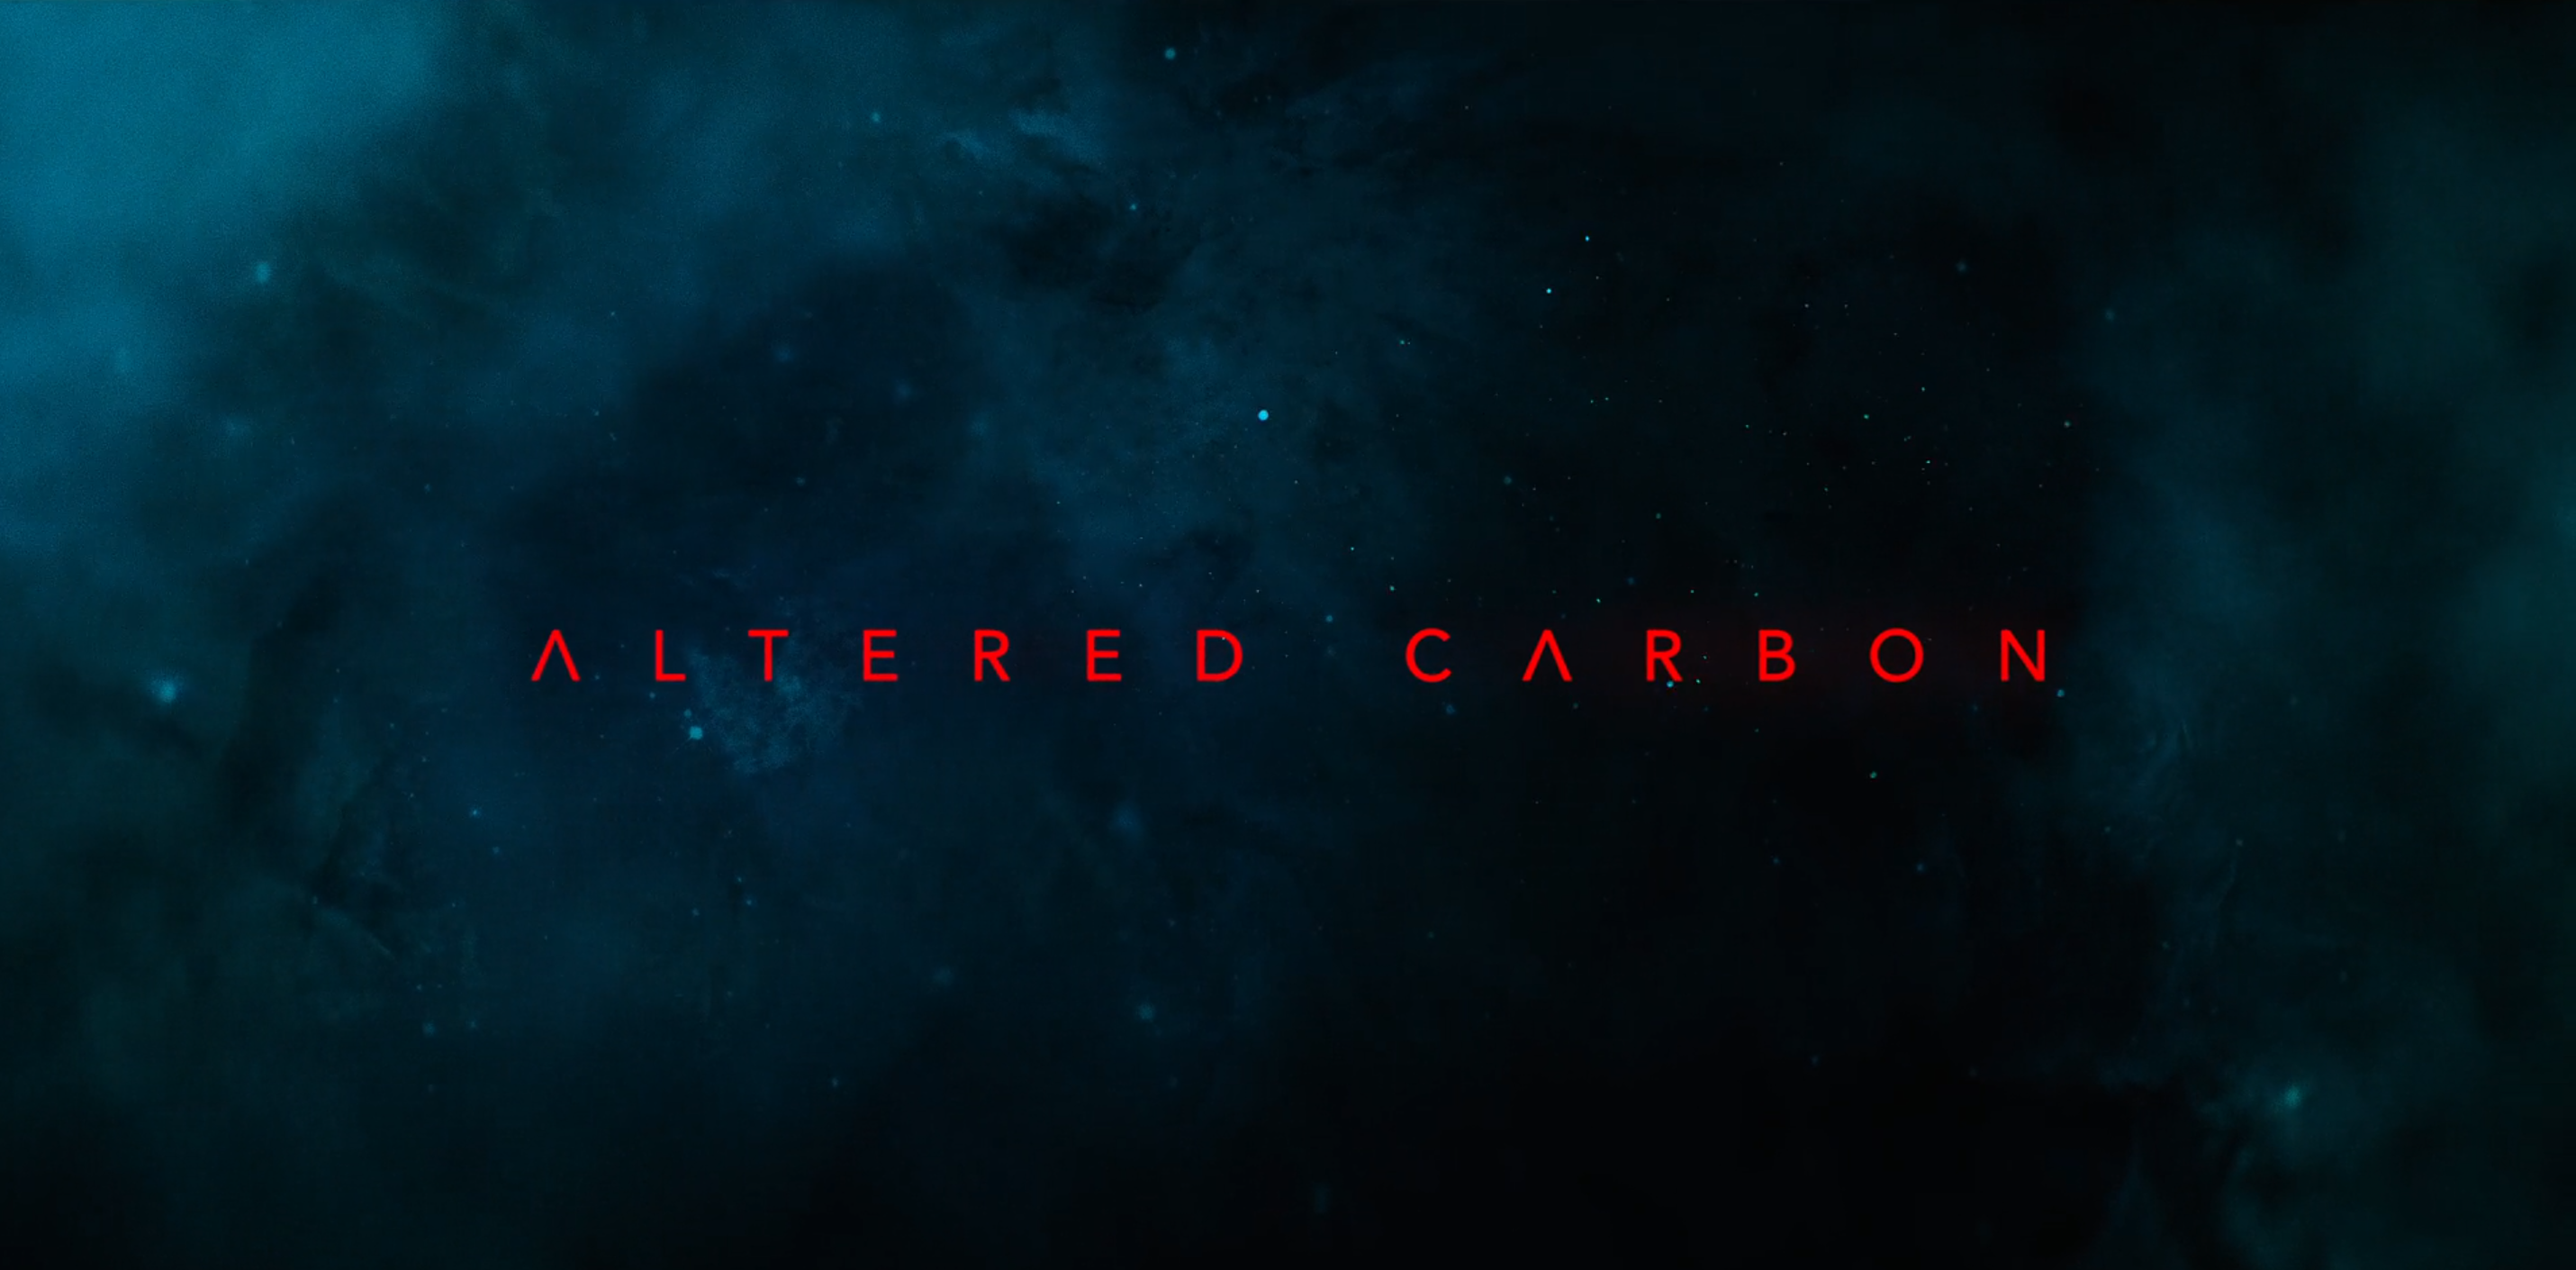 Altered Carbon somehow nails the sci-fi book-to-TV landing on